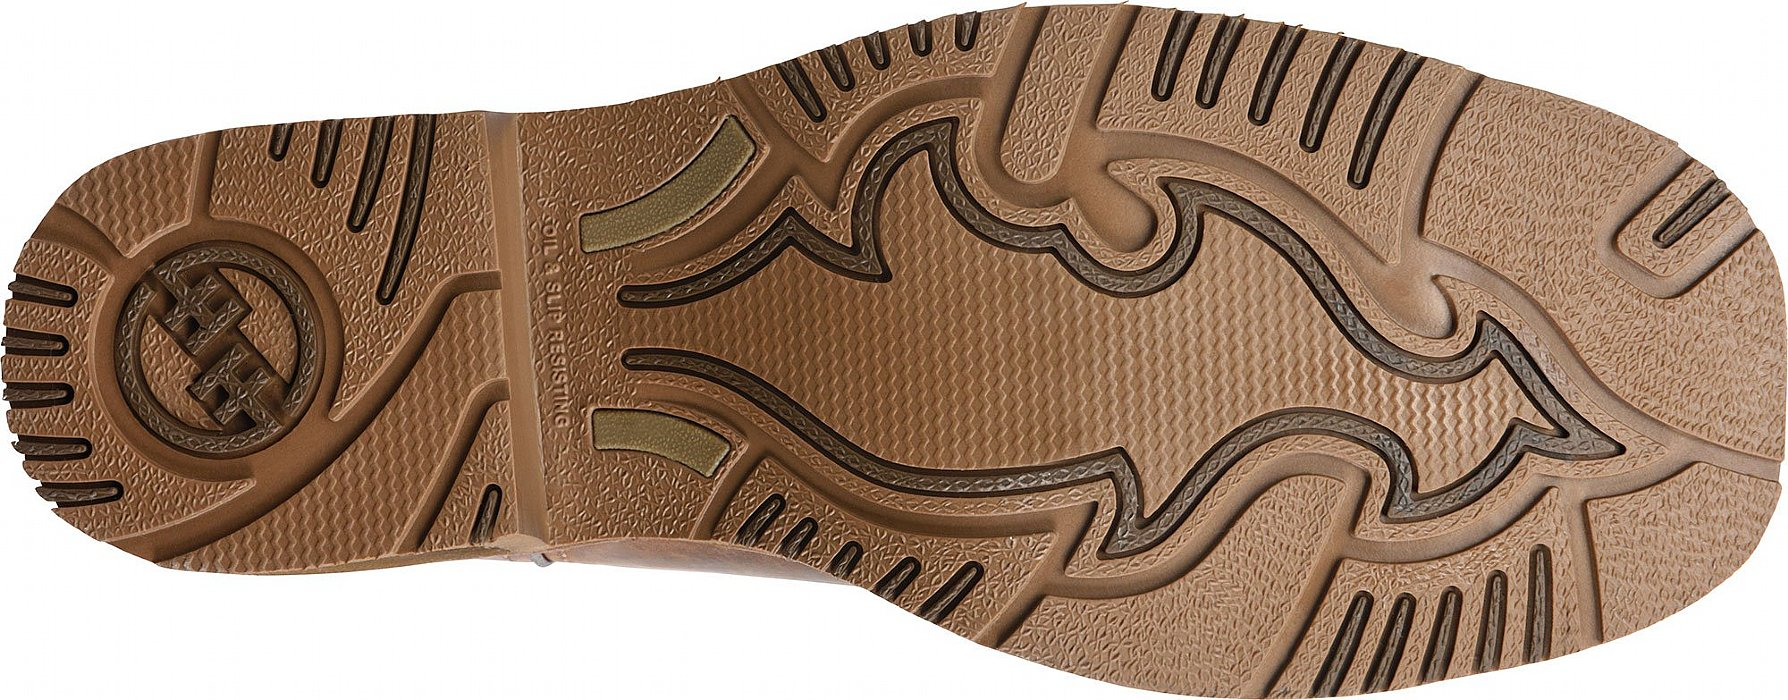 Double-H Men/'s Work Boots Brown Wide Square Composite Toe DH6134